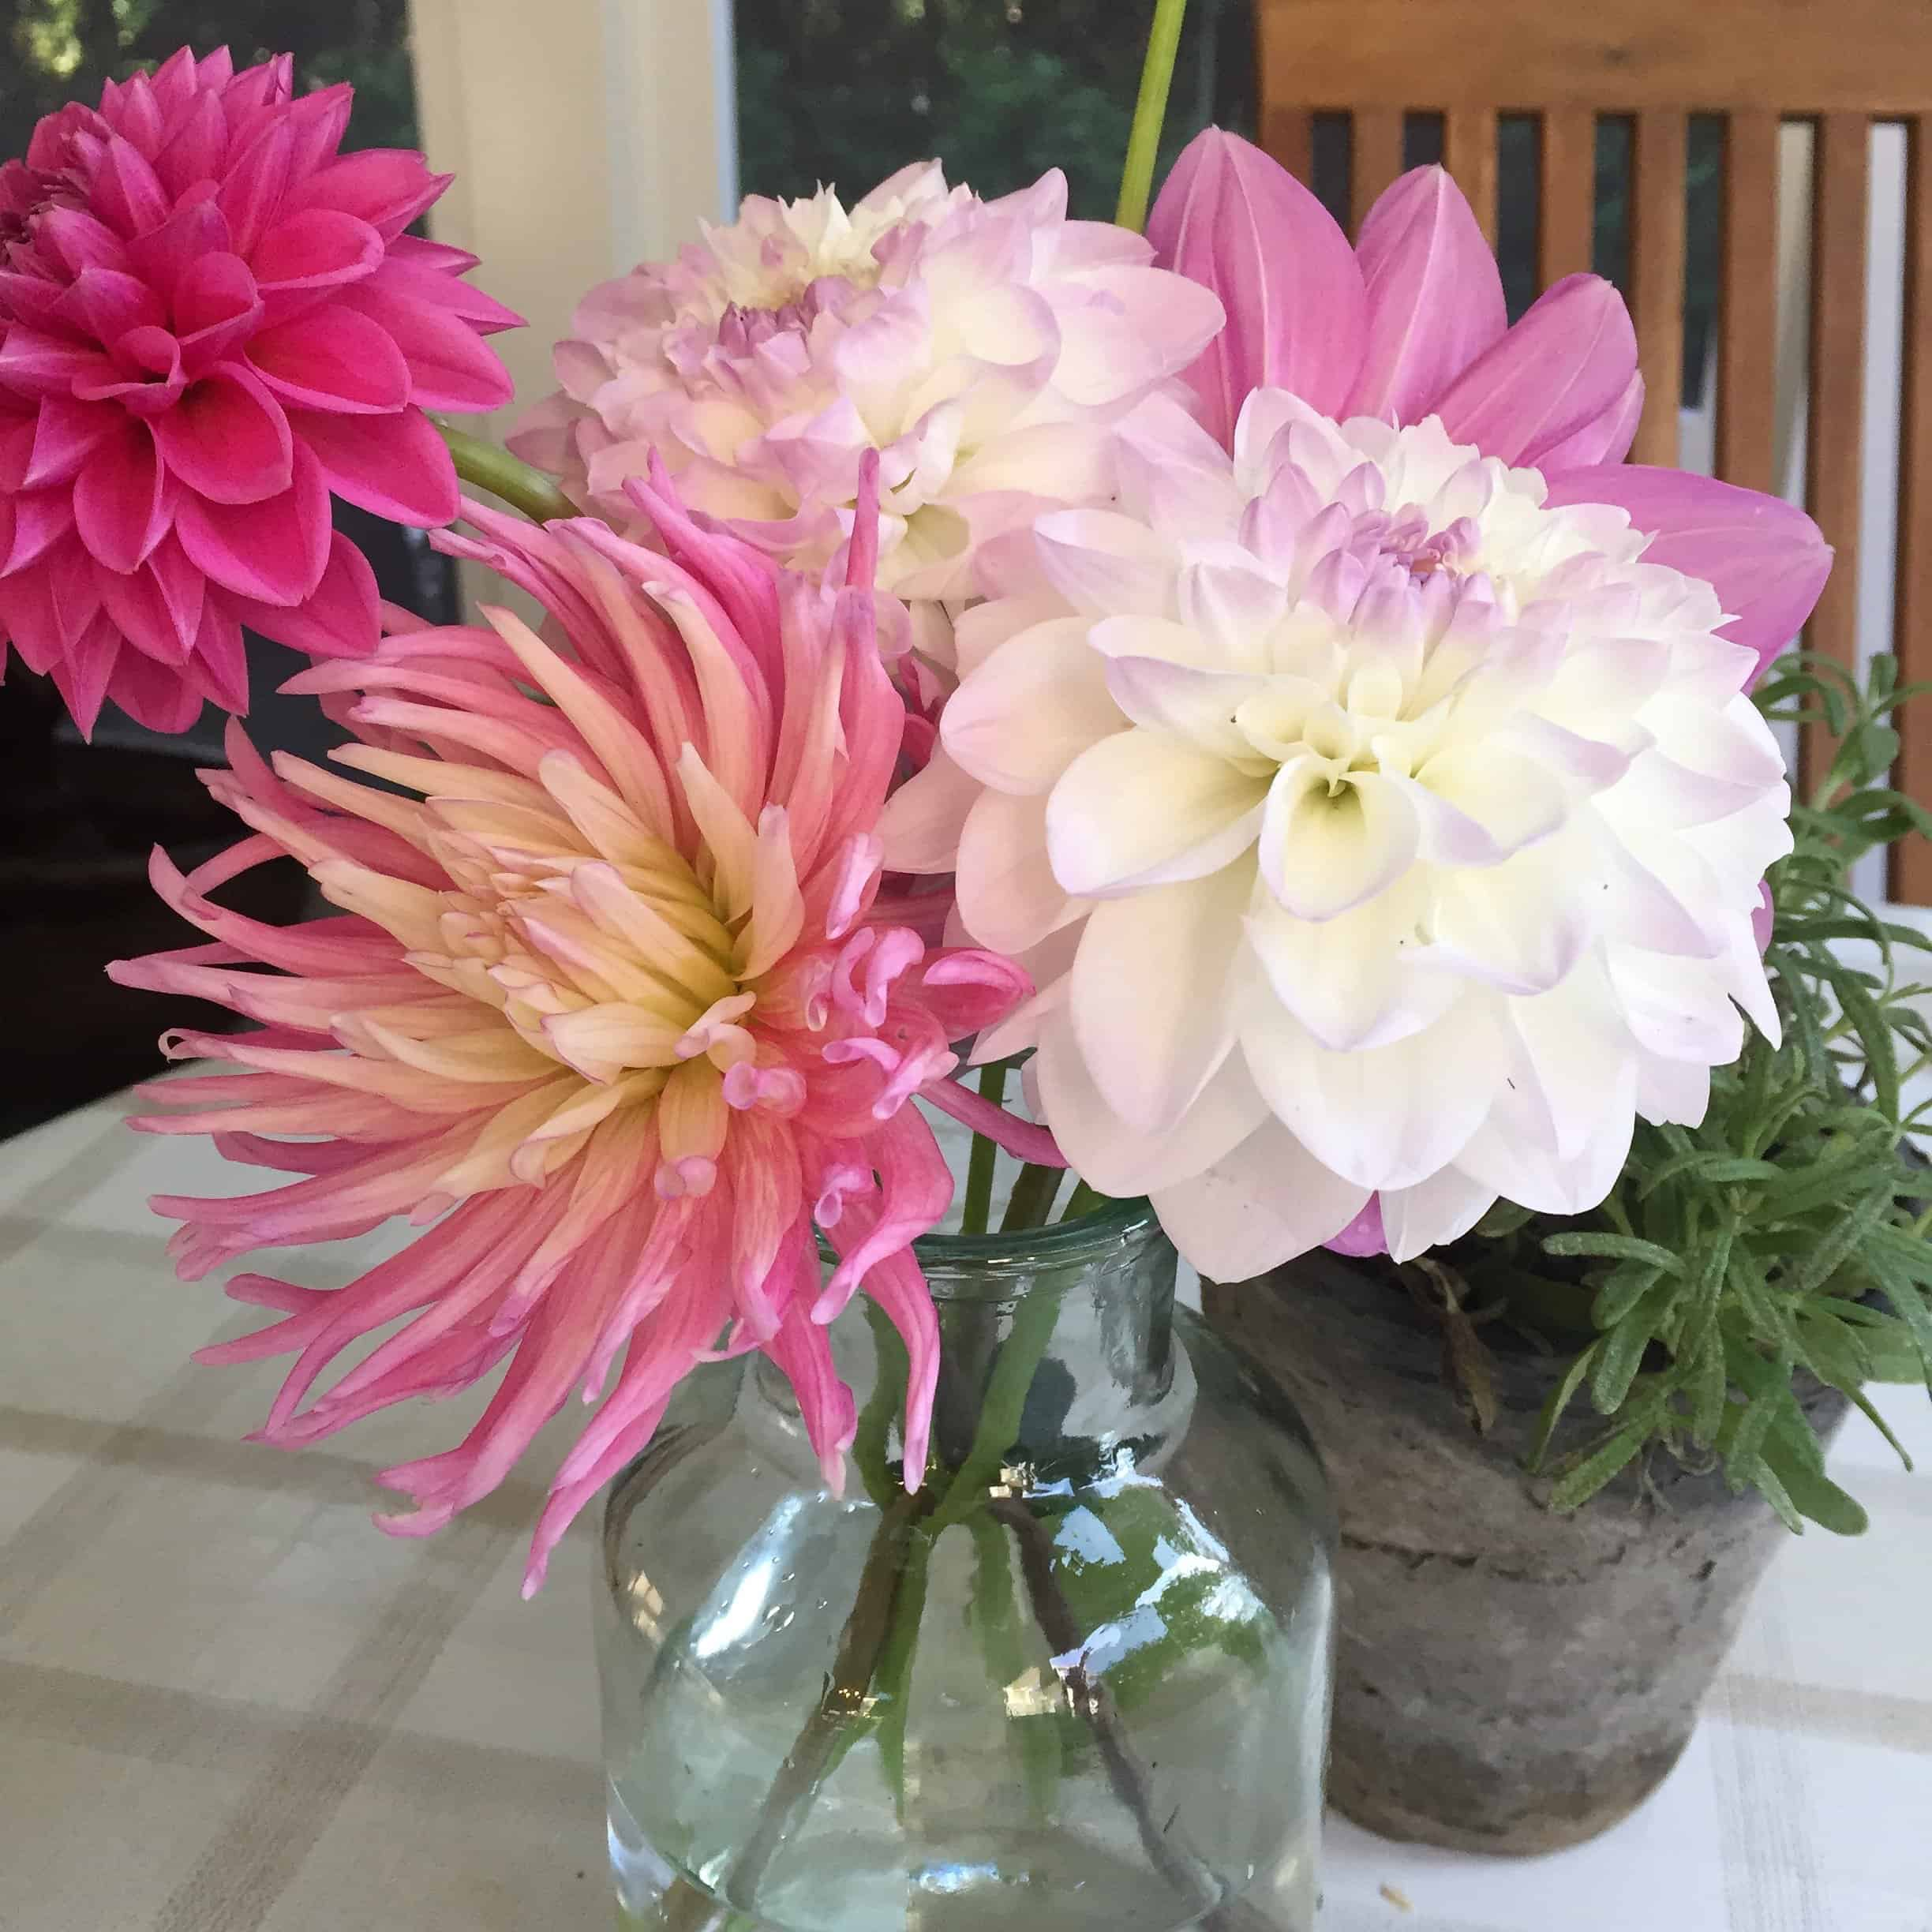 ahlias are attractive plants in the garden, but the real reason I grow them is to have plenty of cut flowers for the house. (Photos by Garden Making)